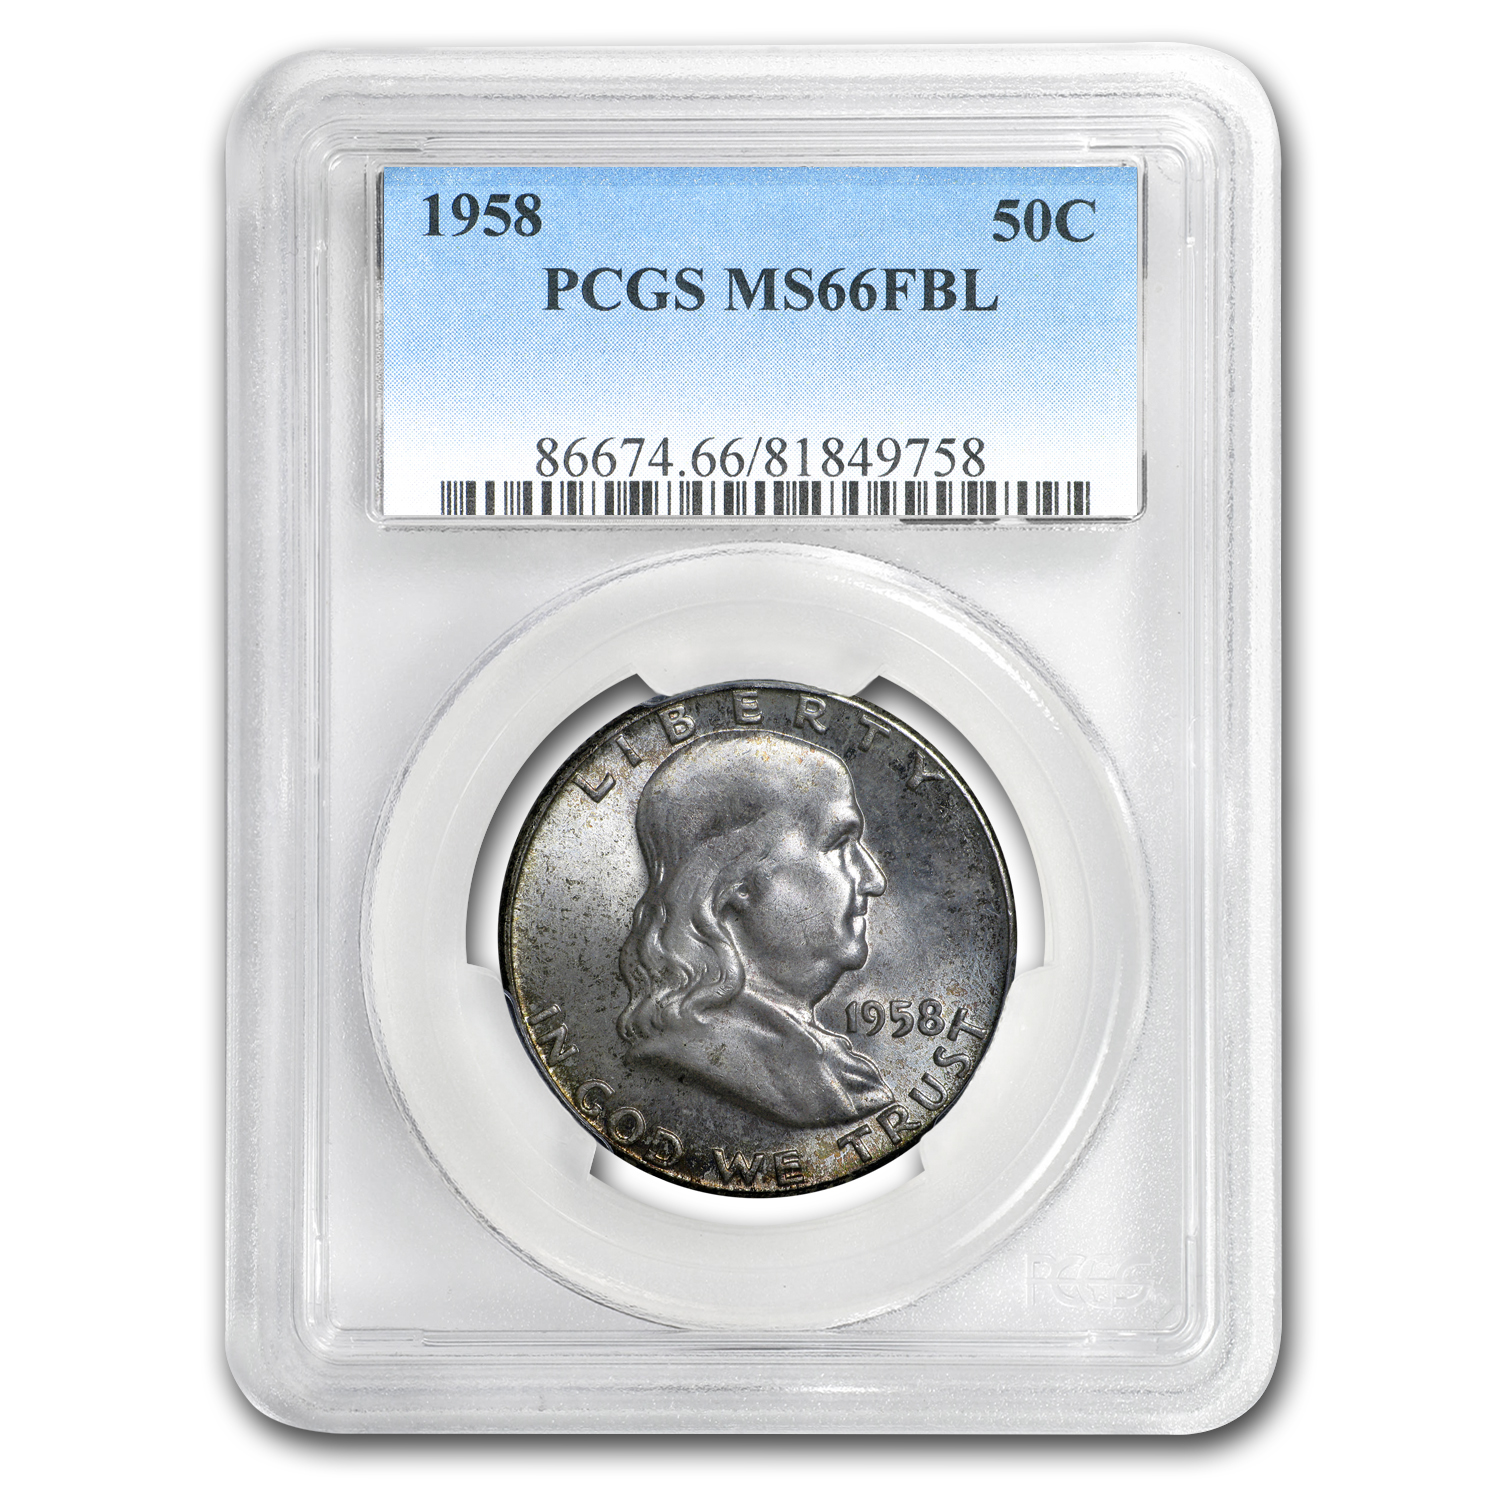 1958 Franklin Half Dollar MS-66 PCGS (FBL, Toned)